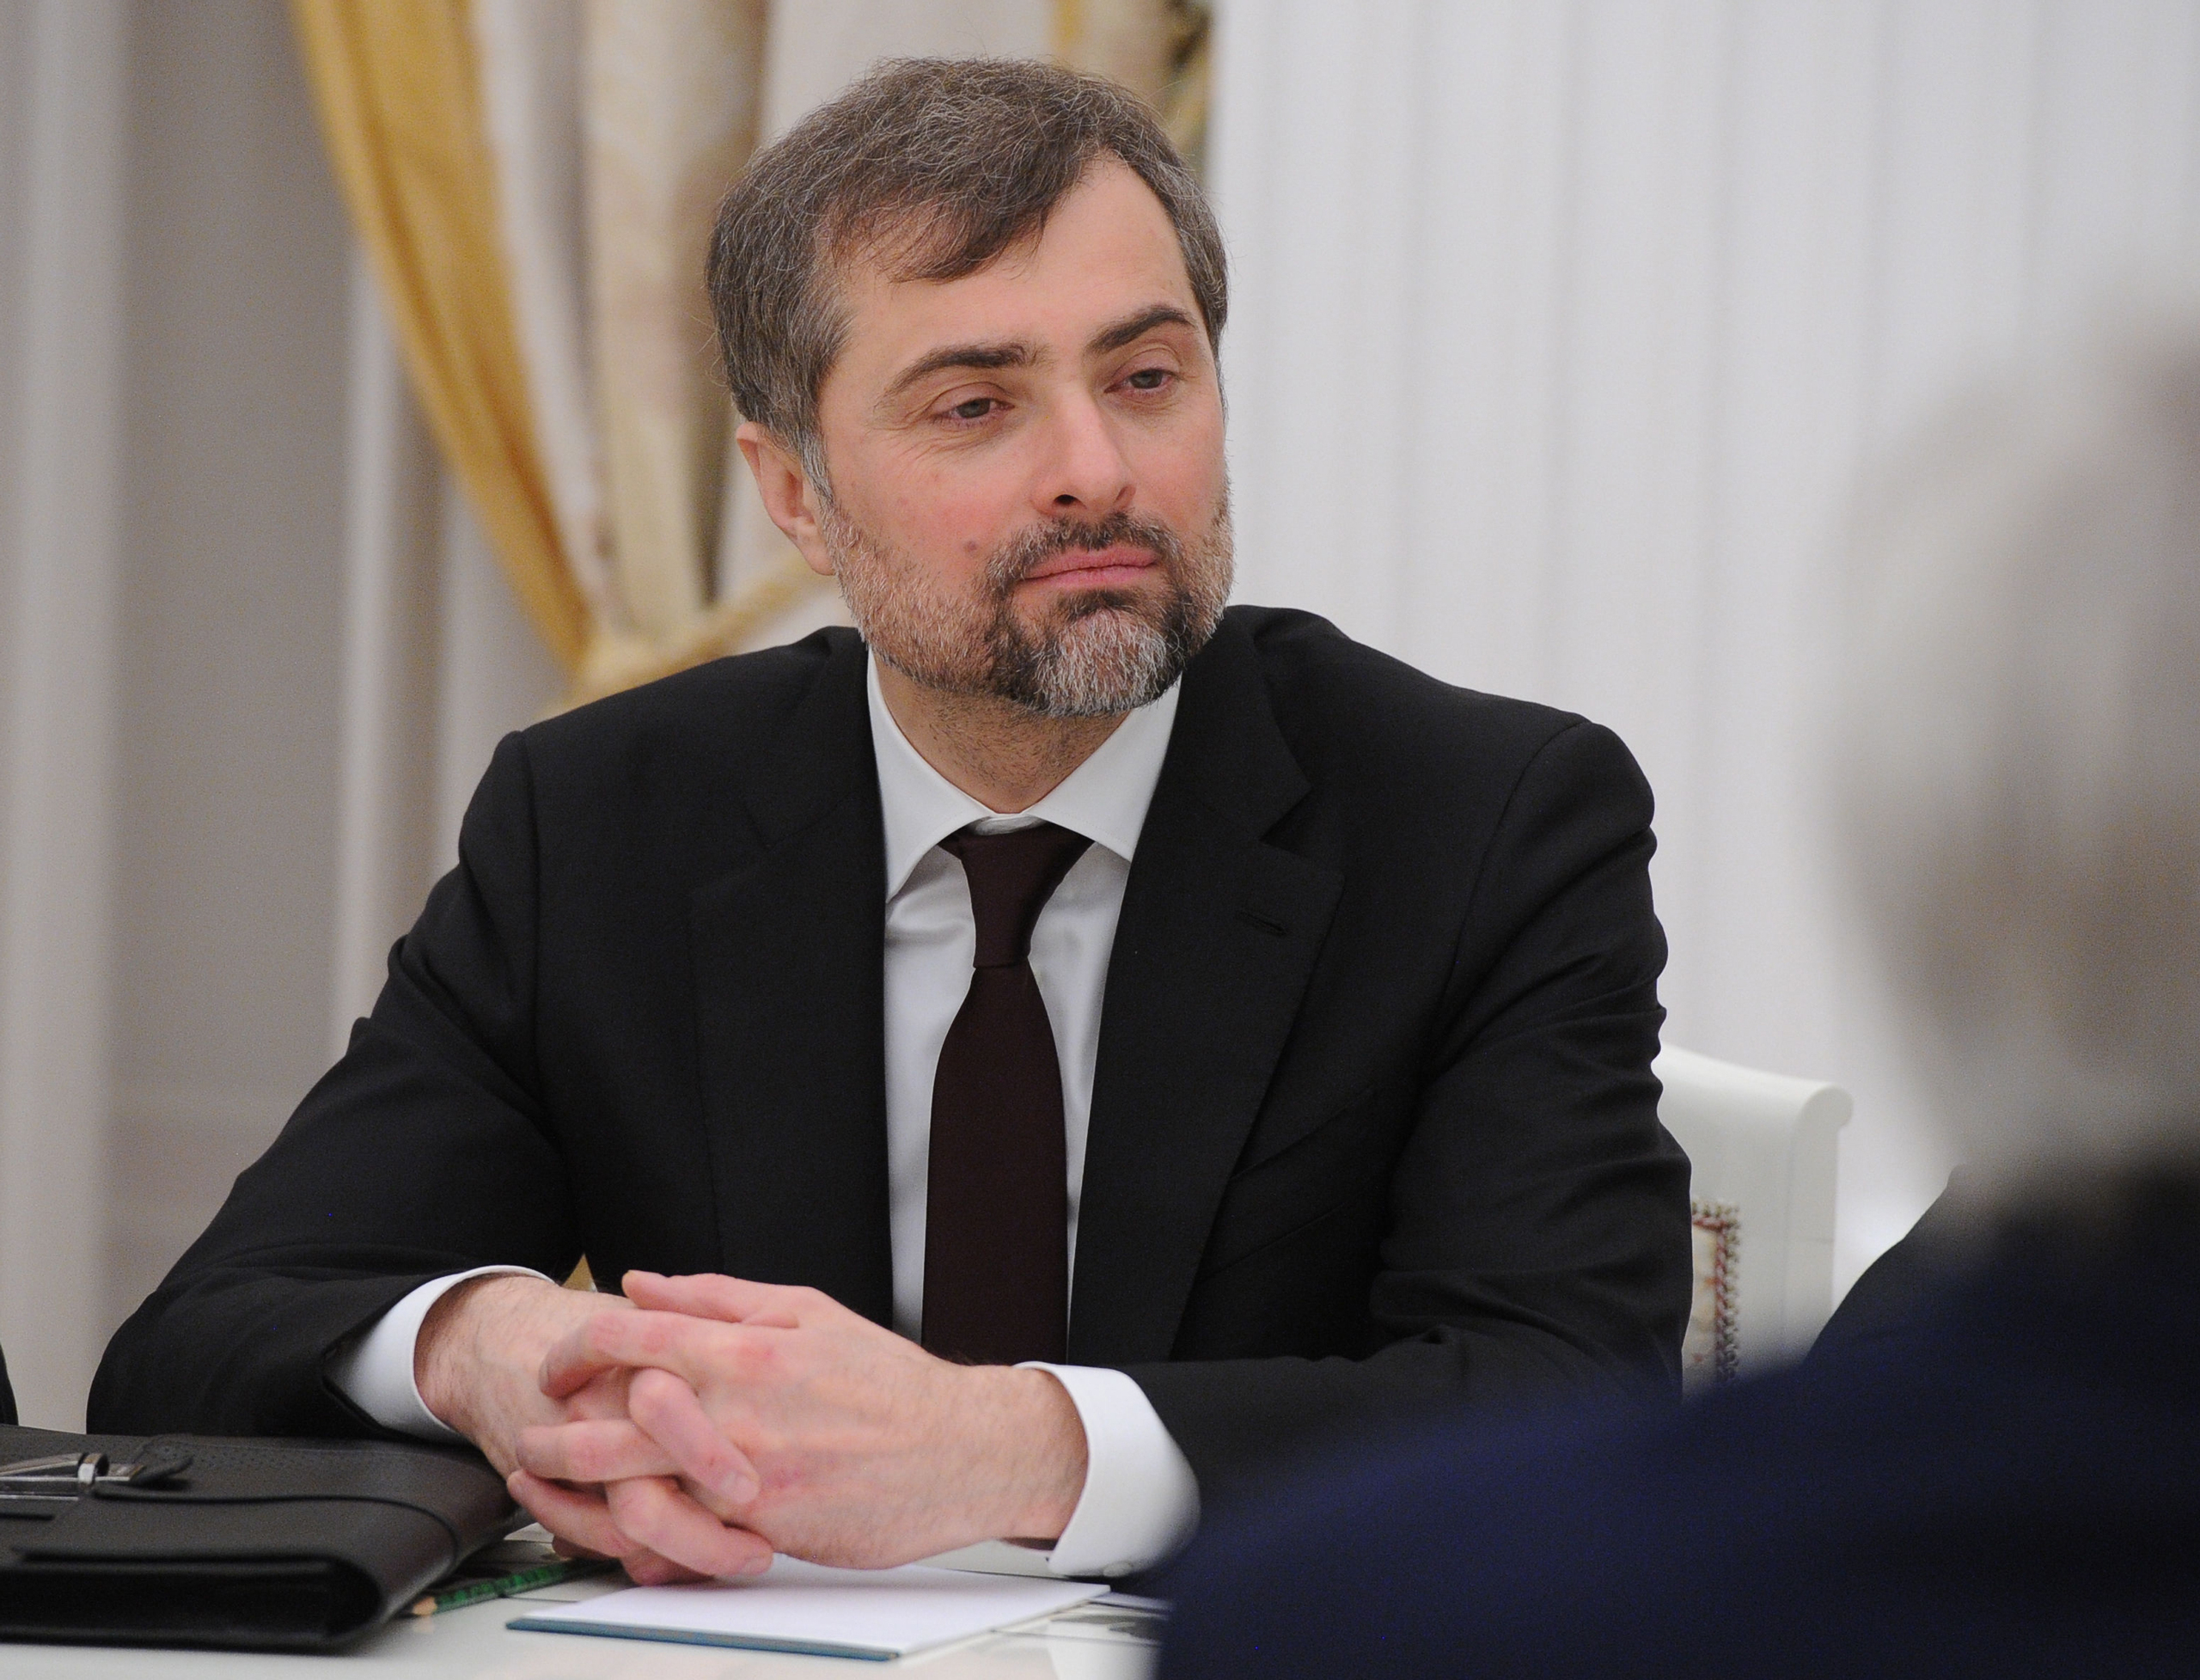 Russian President's Aide Vladislav Surkov attends a meeting between Russian President Vladimir Putin and U.S. Secretary of State John Kerry in Moscow on Mar. 24, 2016.